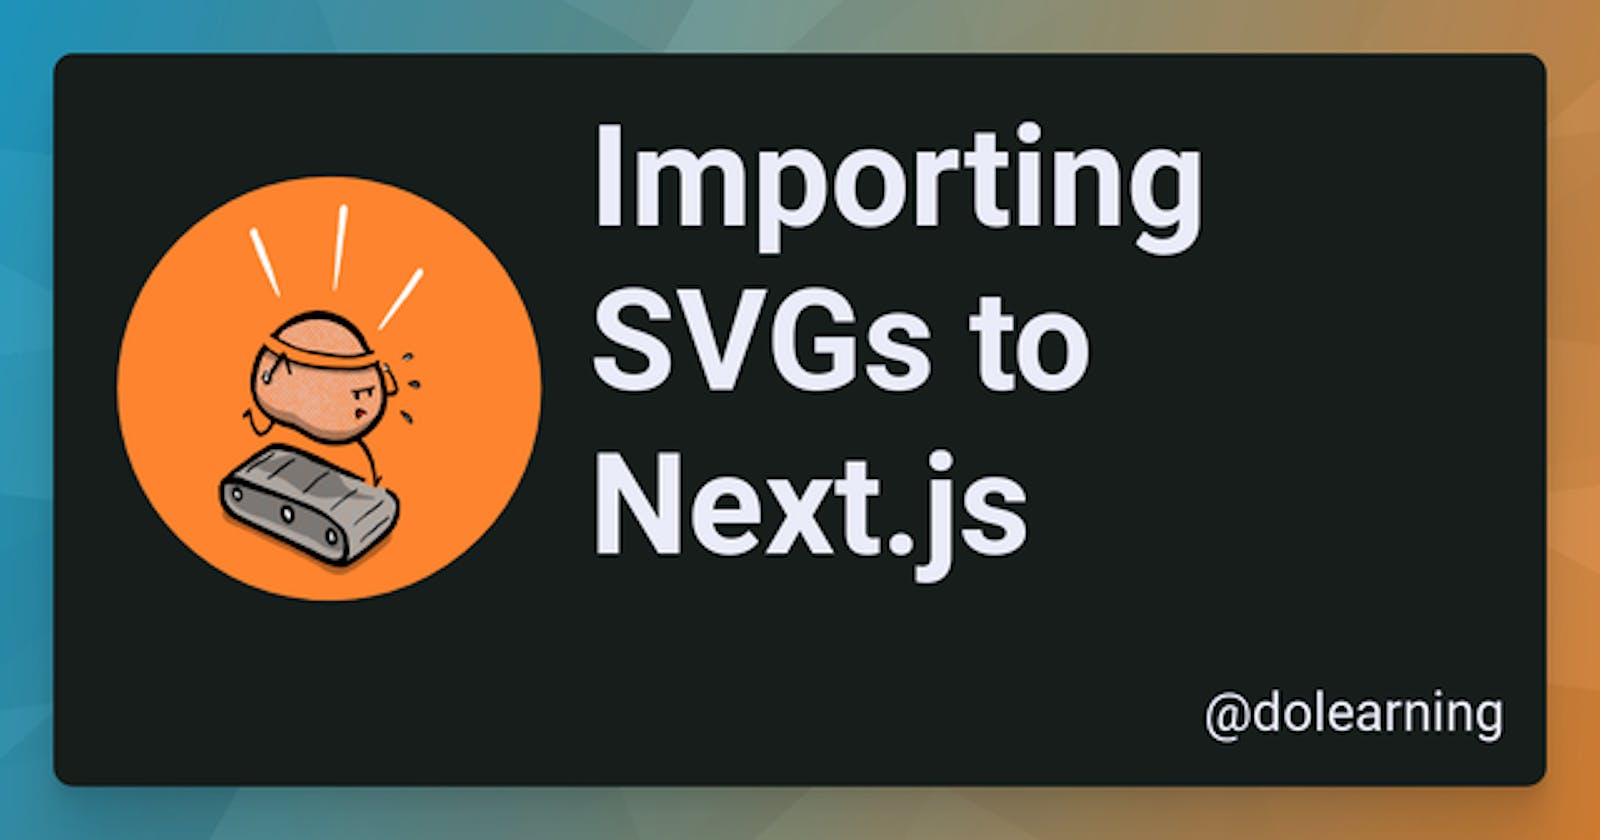 Importing SVGs to Next.js